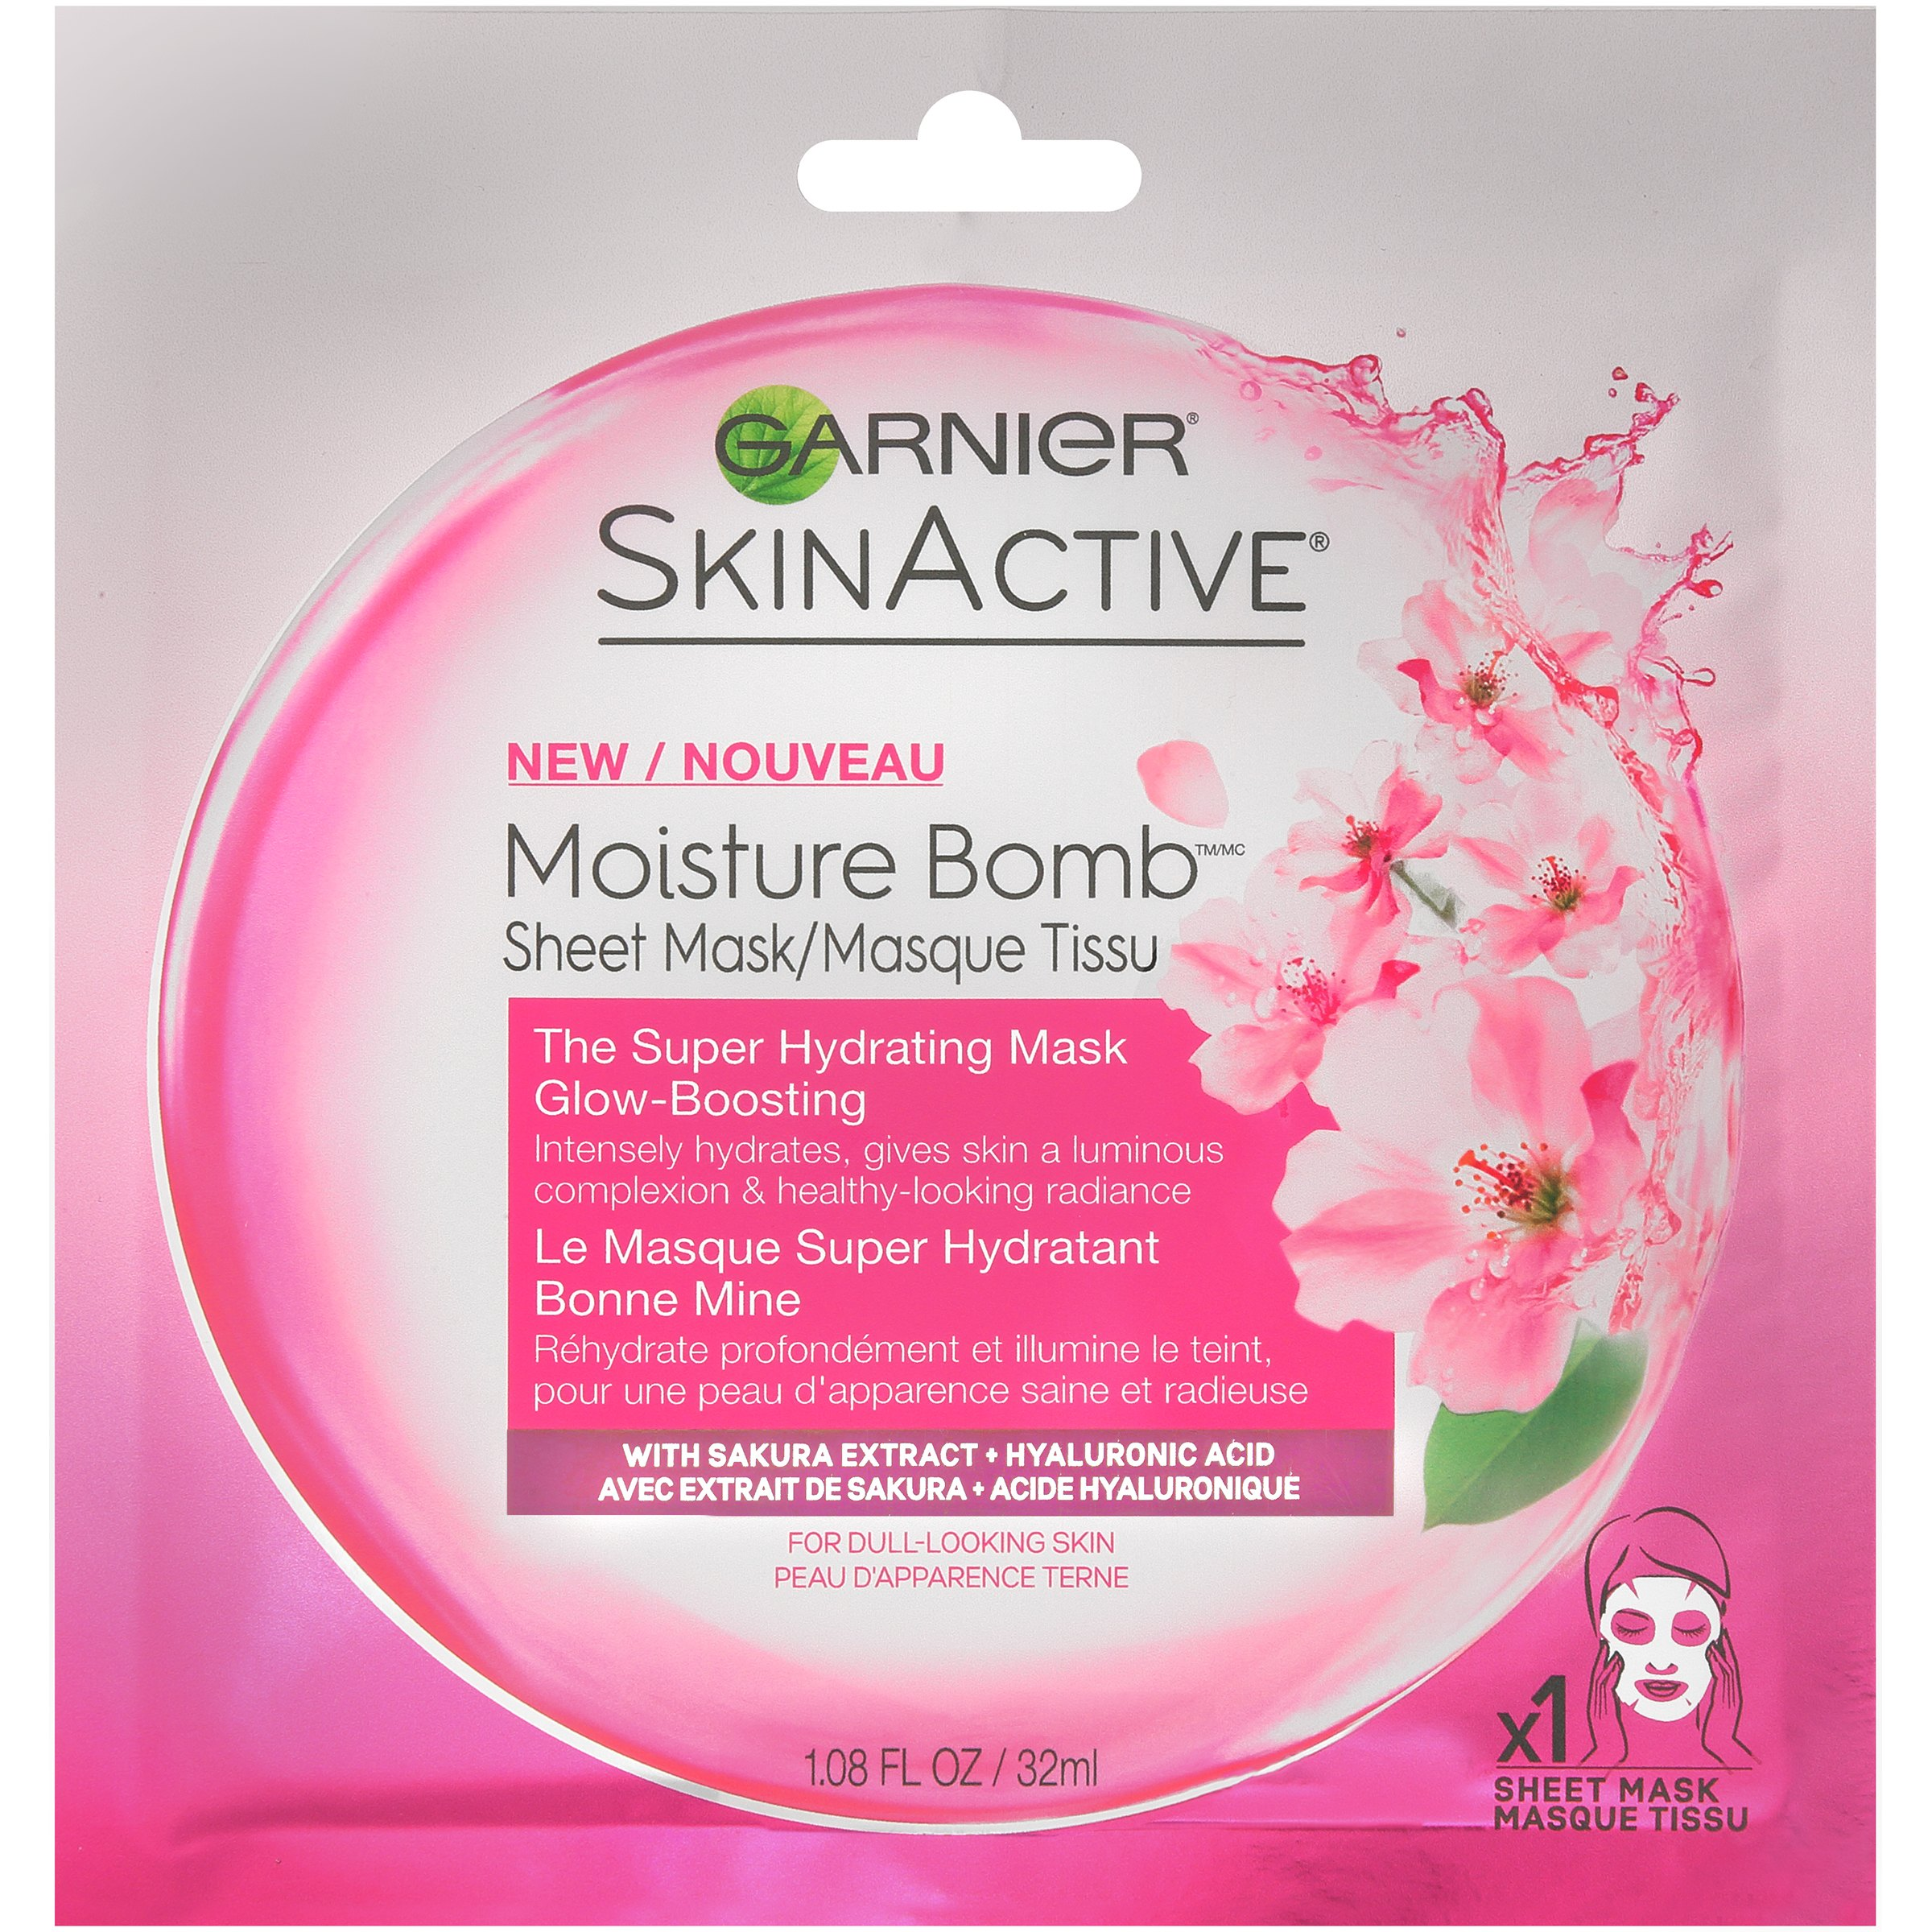 Garnier SkinActive Moisture Bomb The Super Hydrating Glow-Boosting Sheet Mask 1.08 fl. oz. Pack